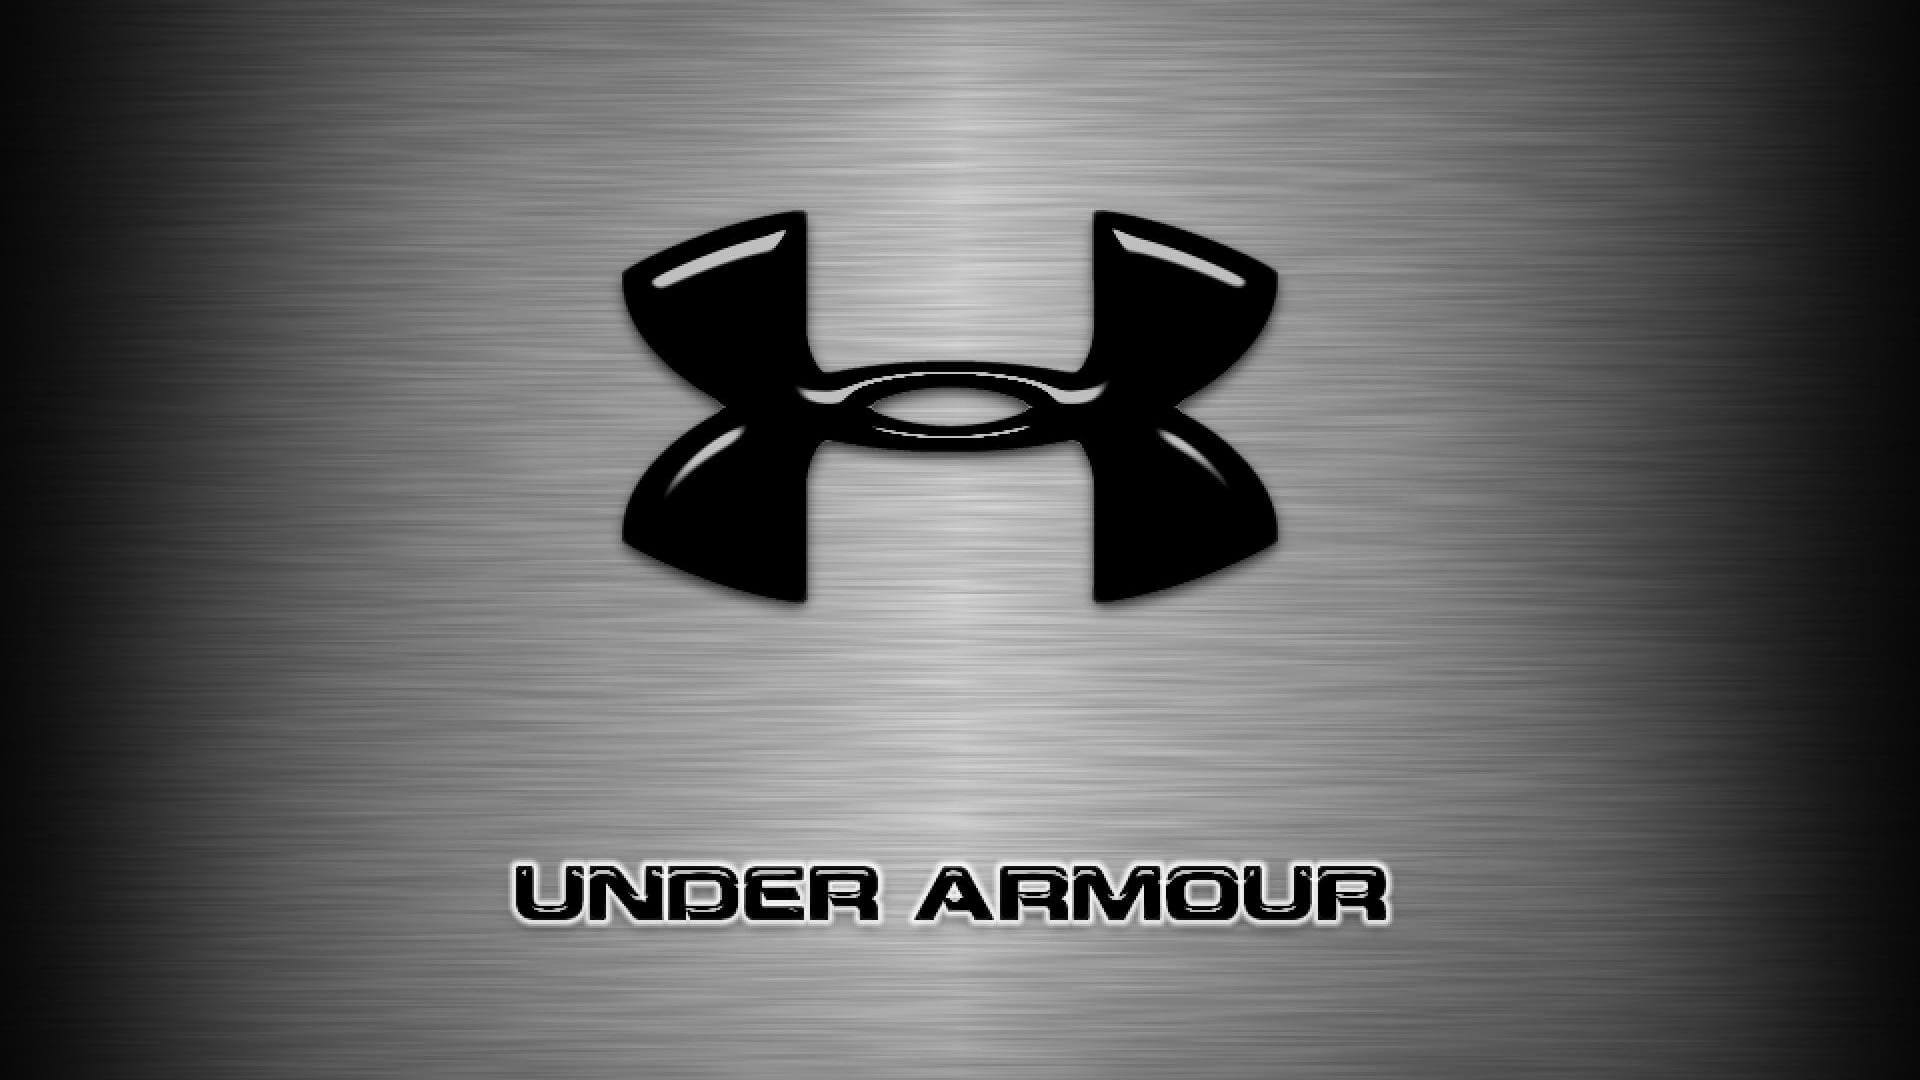 under armour wallpapers for facebook - photo #10